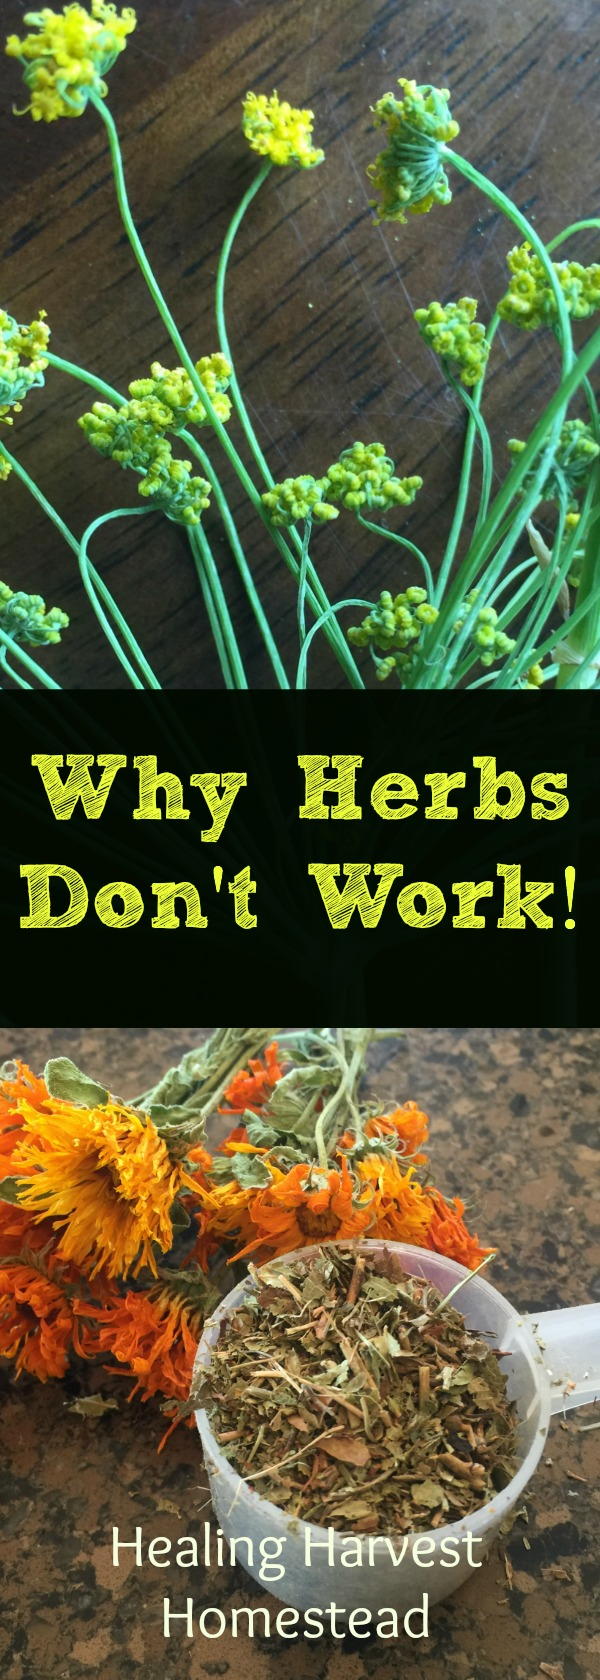 If you have ever wondered why herbal remedies aren't working for you, here are some potential reasons to consider.